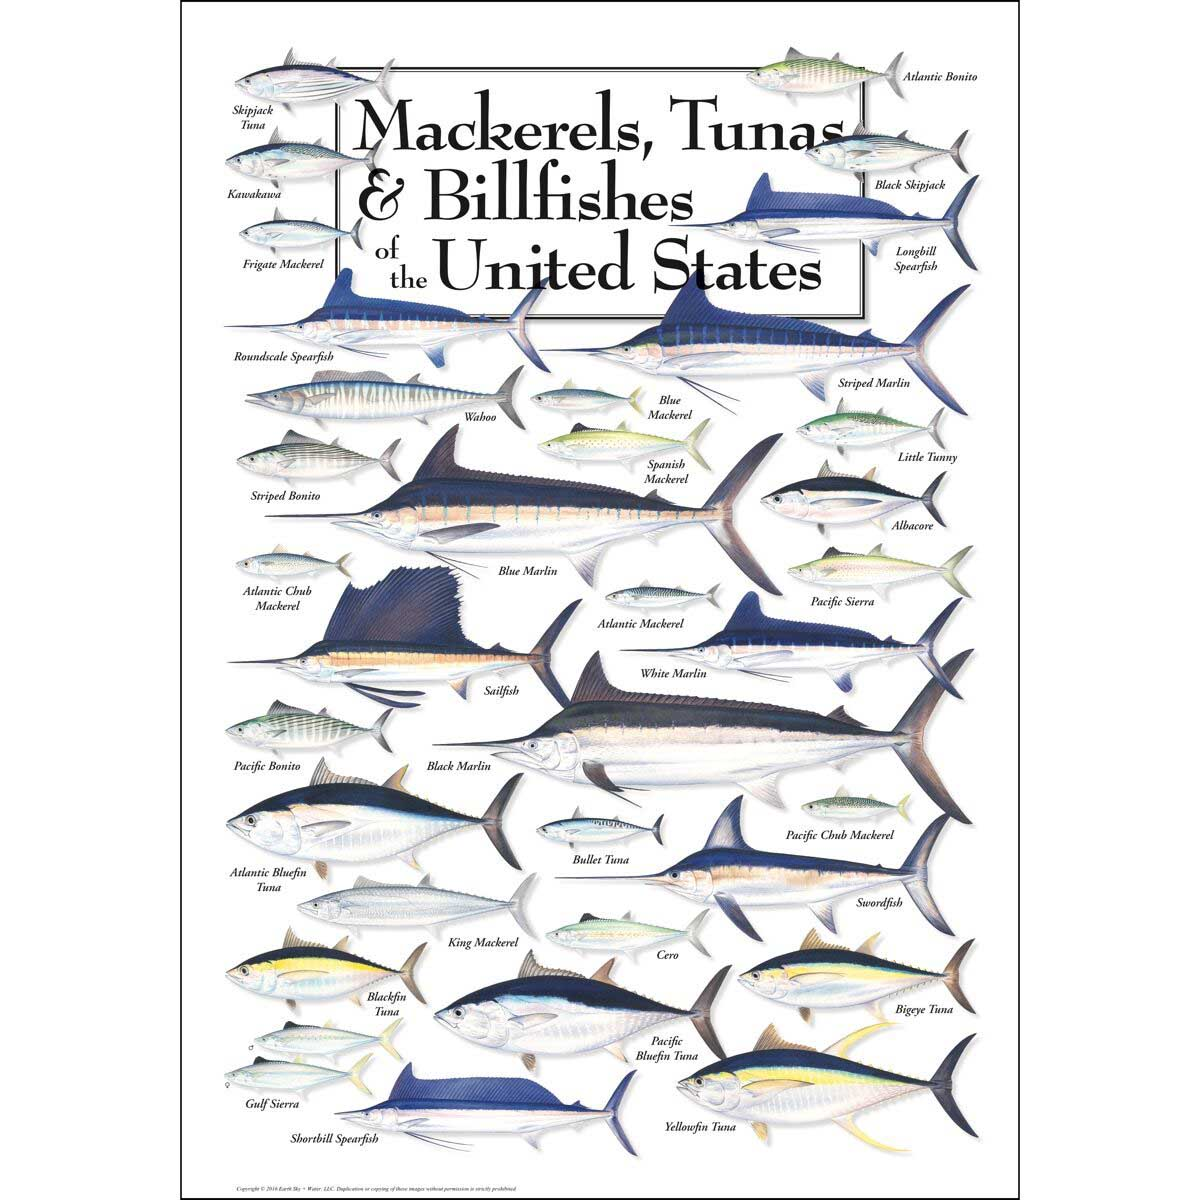 Mackerels, Tunas & Billfishes of the US Under The Sea Jigsaw Puzzle